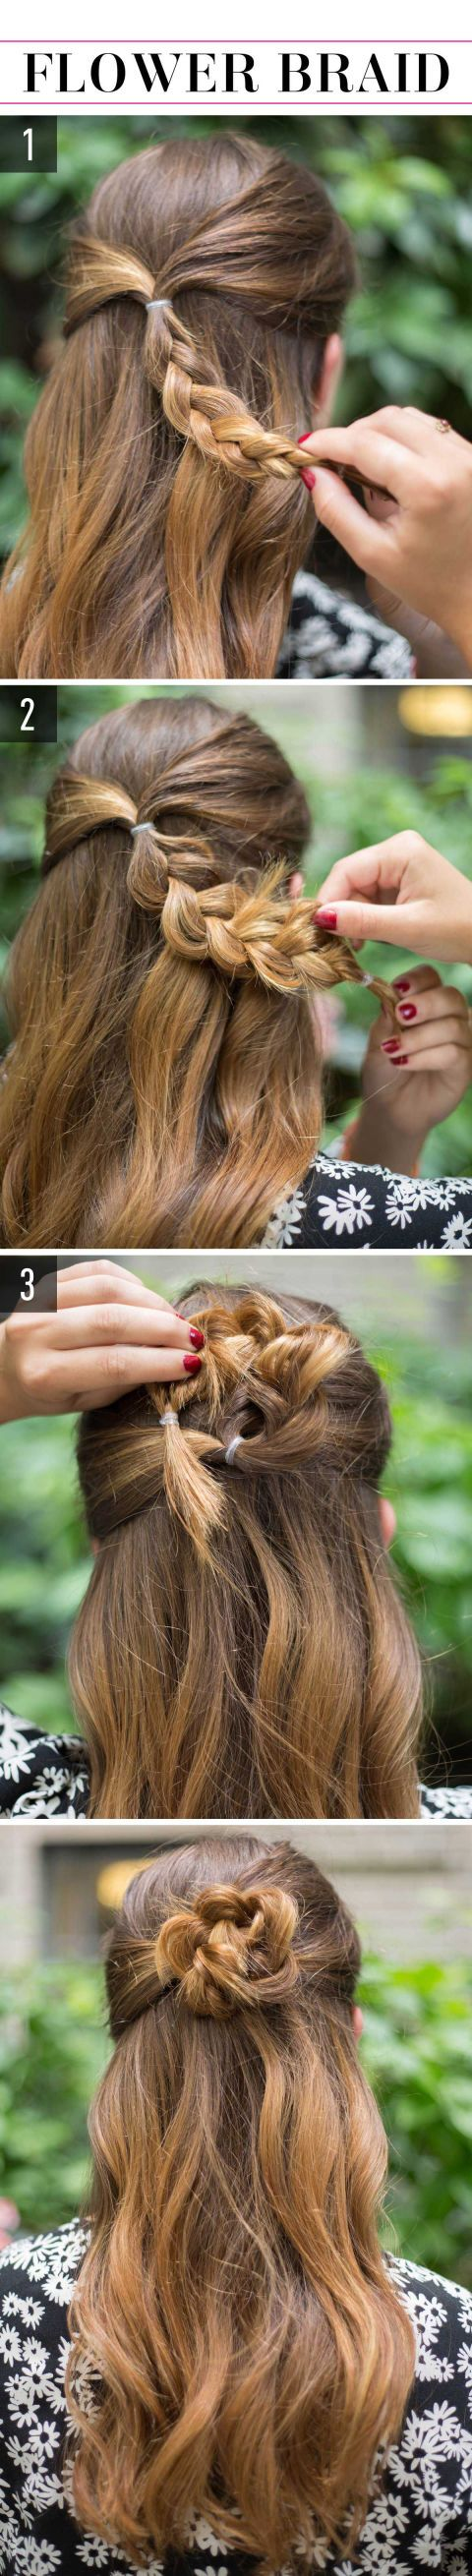 best beautyhair images on pinterest hairstyles make up and braids